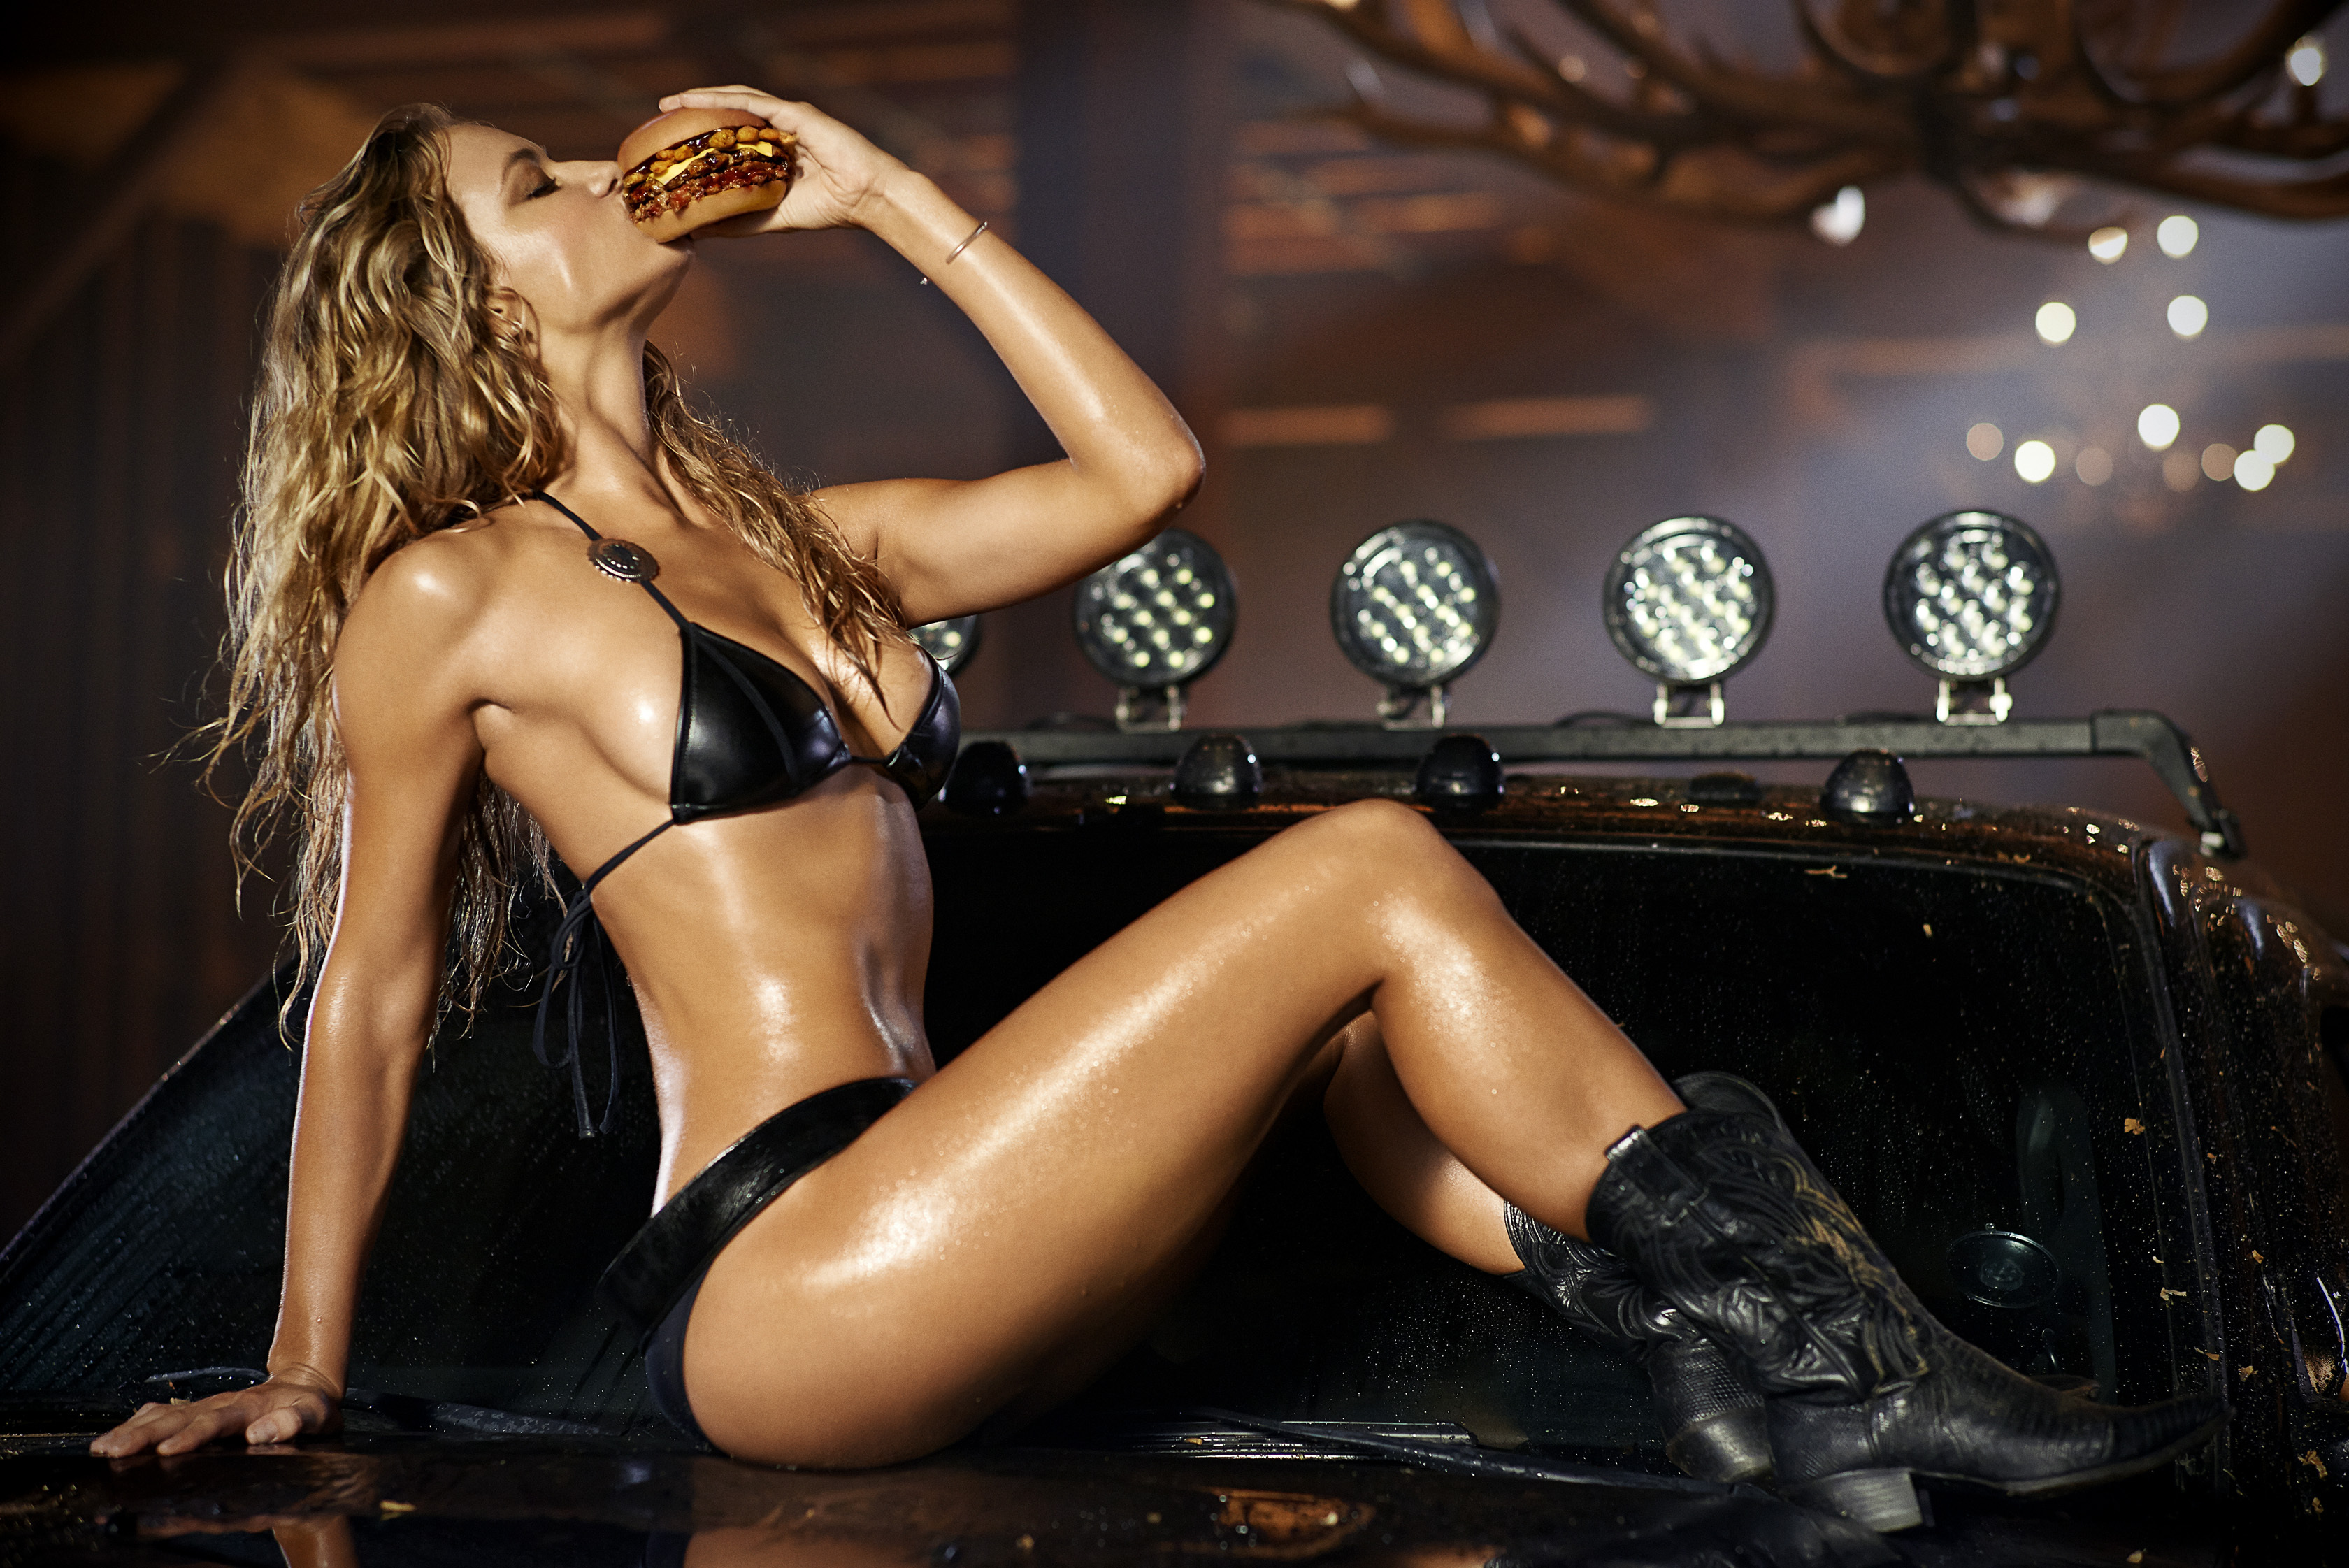 Hannah Ferguson, Texas native and Sports Illustrated swimsuit model, takes the reins as the newest spokesmodel for Carl's Jr. and Hardee's in the Texas BBQ Thickburger ad campaign premiering next week. (Photo: CKE Restaurants & Don Flood)